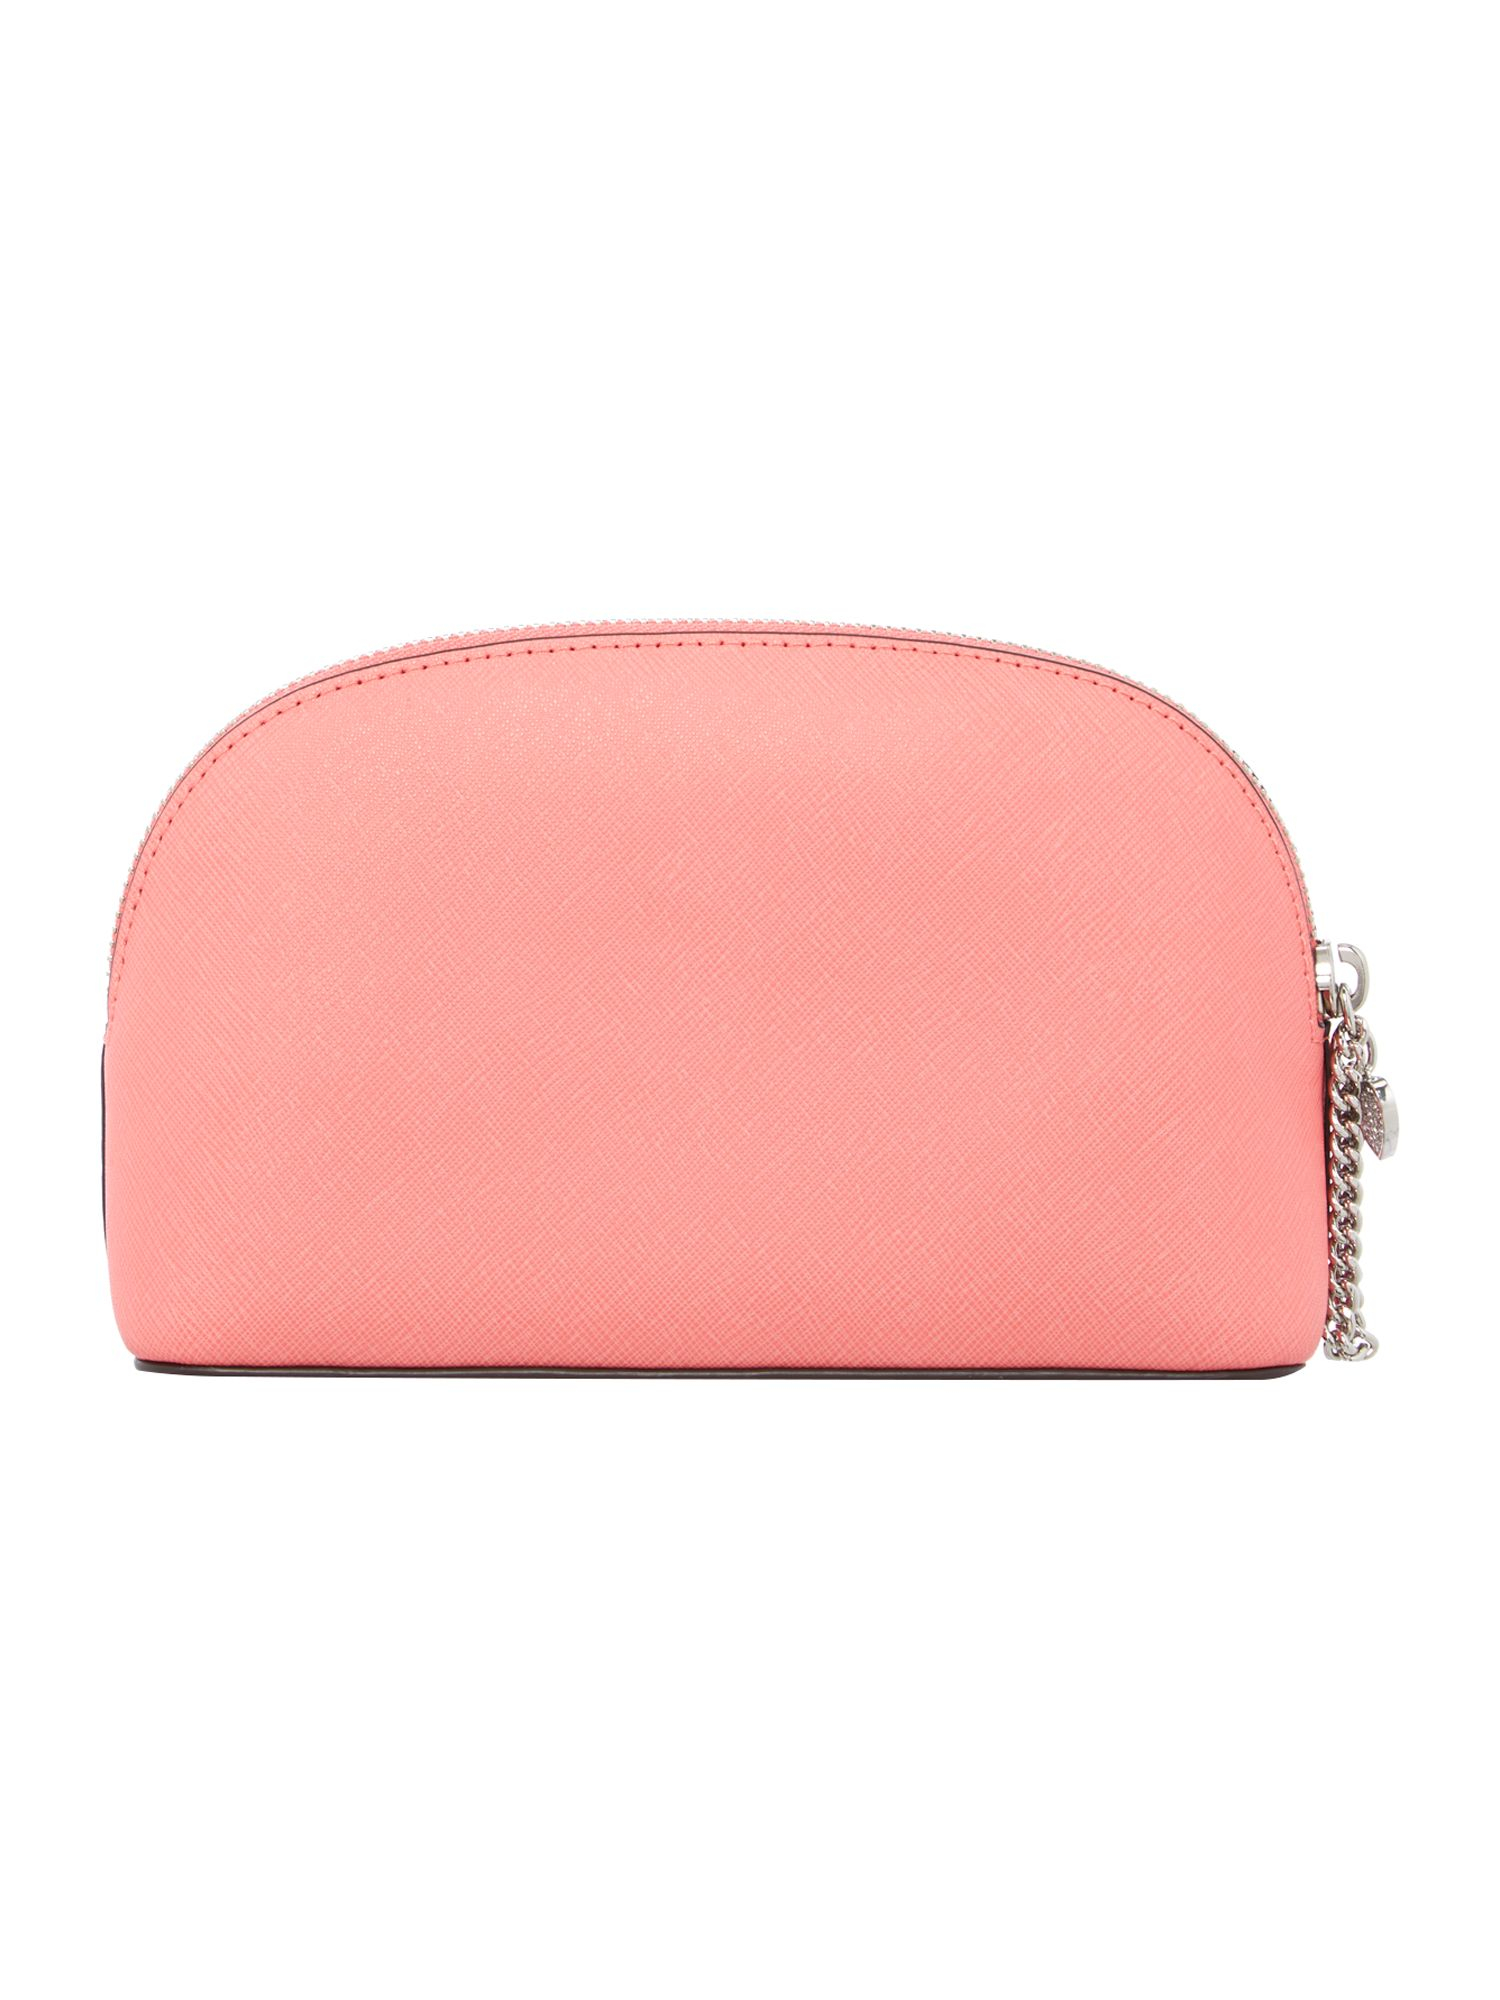 Michael kors Alex Coral Cosmetic Bag in Pink : Lyst